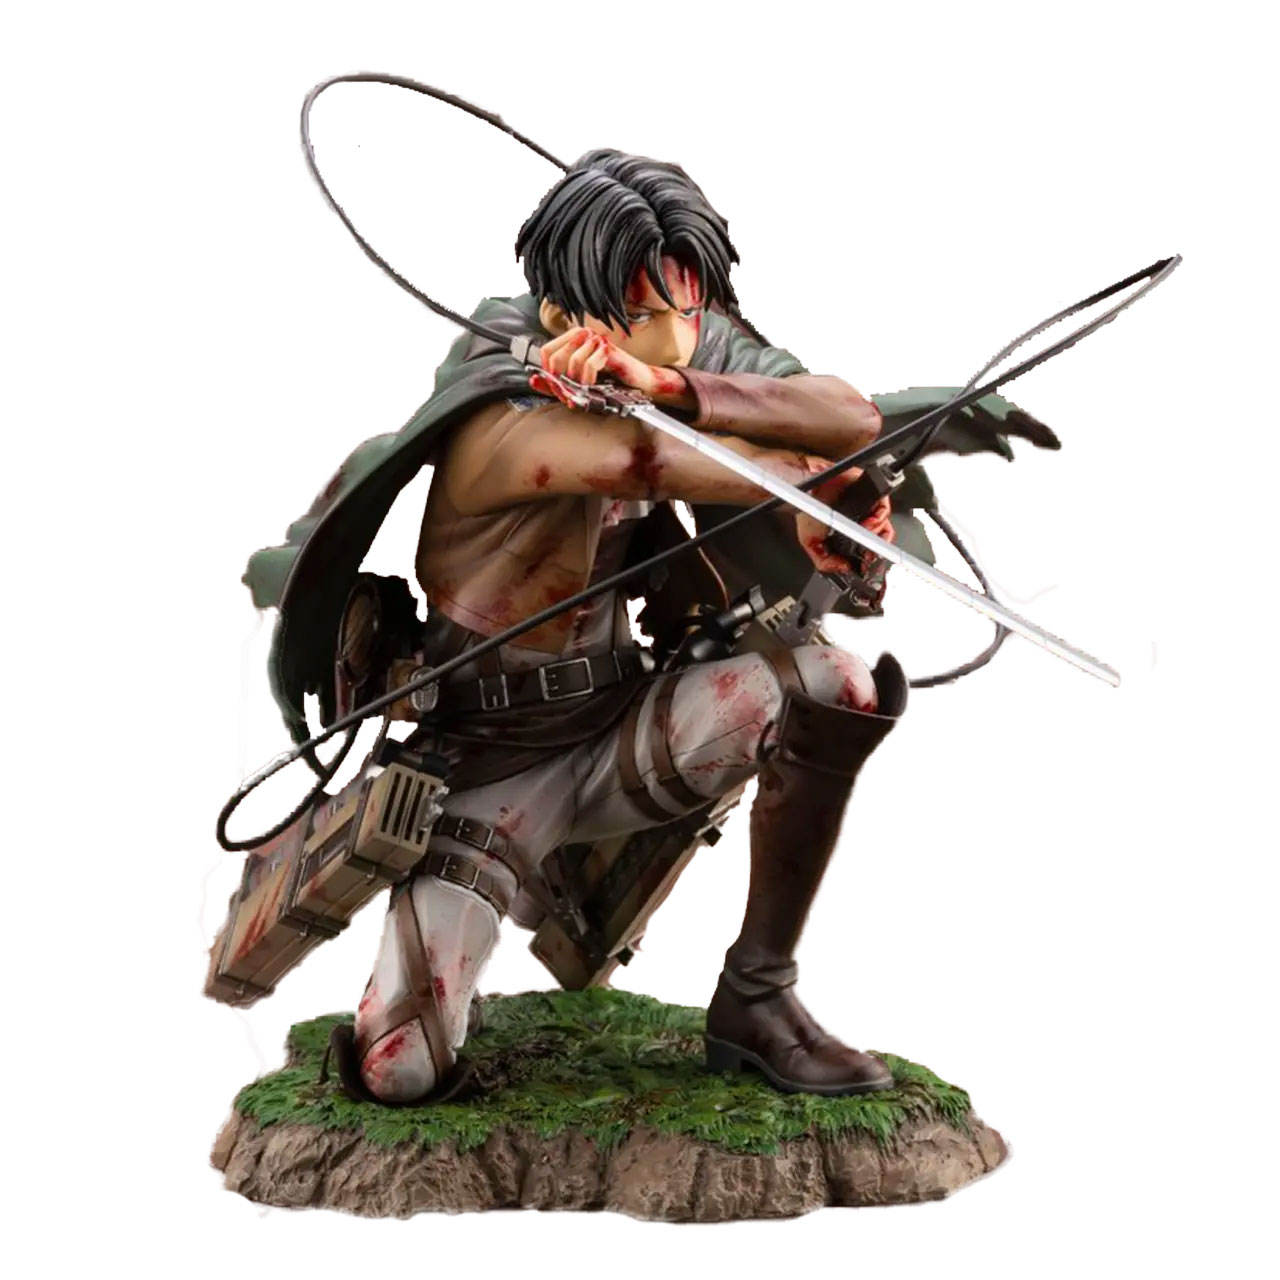 Attacco su Ti-tan Shingeki no Kyojin Ackerman Battle Version Figura del Anime Del <span class=keywords><strong>Giocattolo</strong></span>